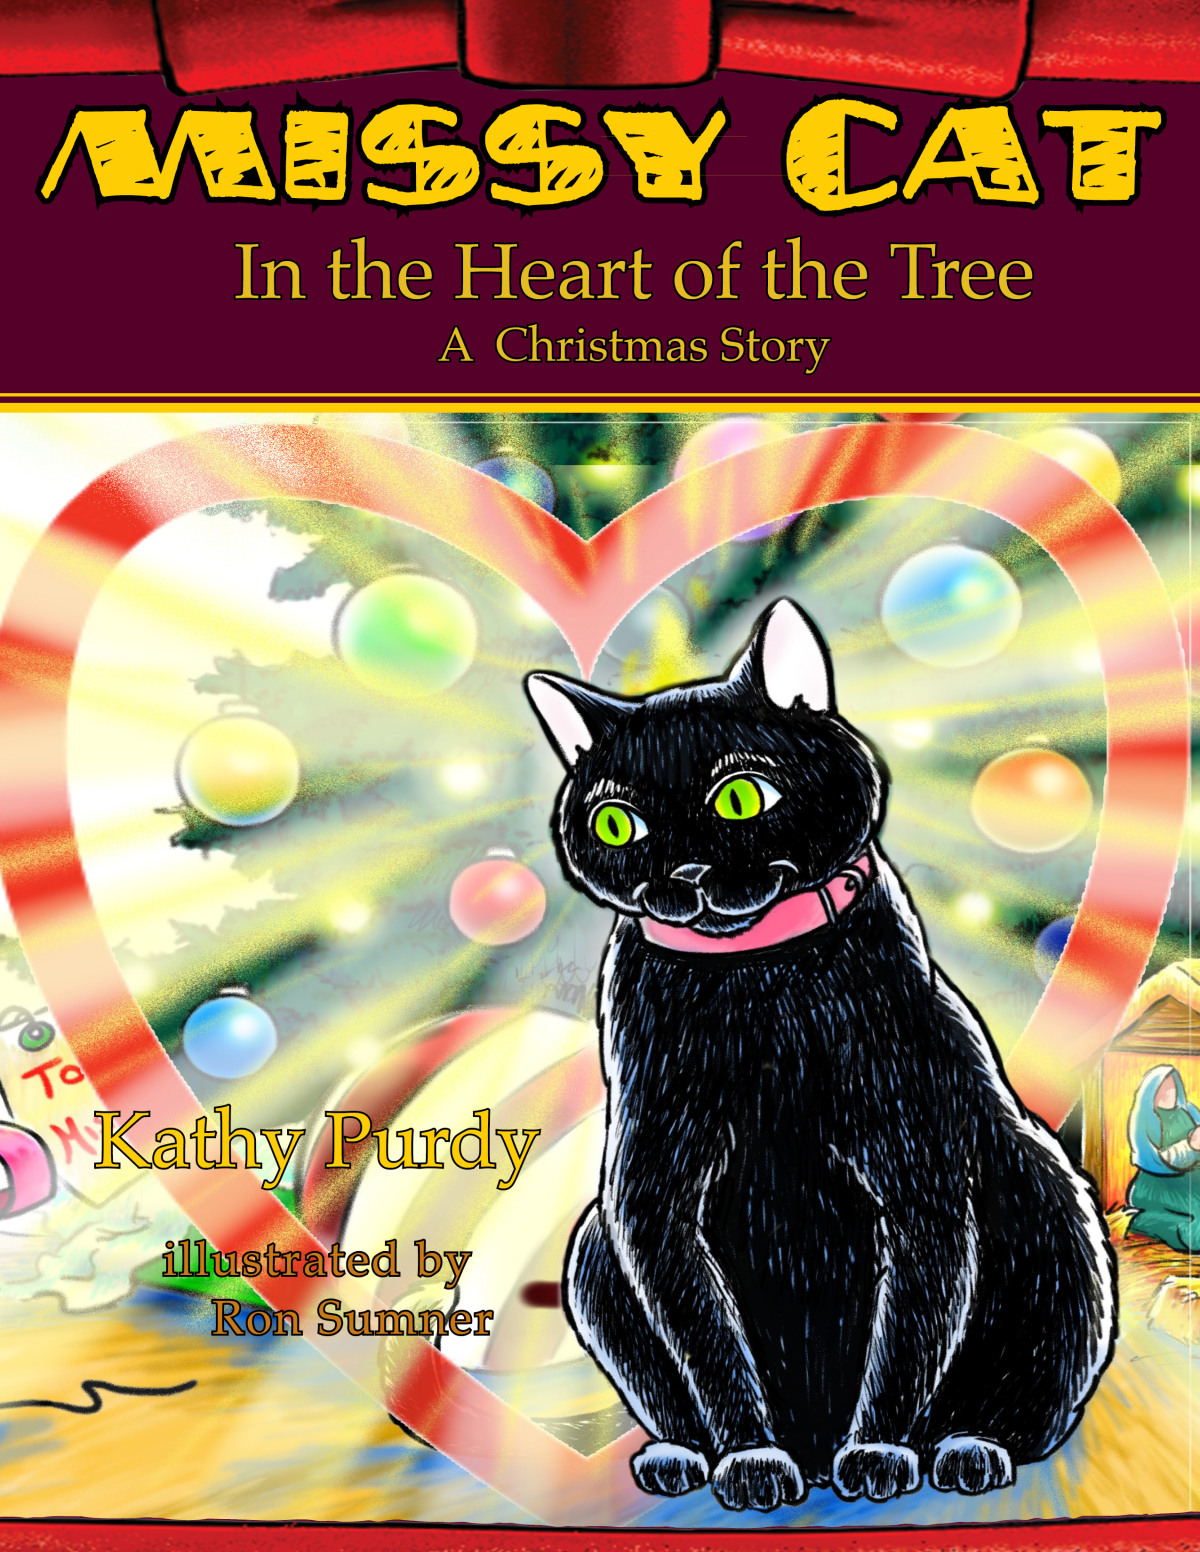 Missy Cat in the Heart of the Tree A Christmas Story By Katherine Purdy Cover